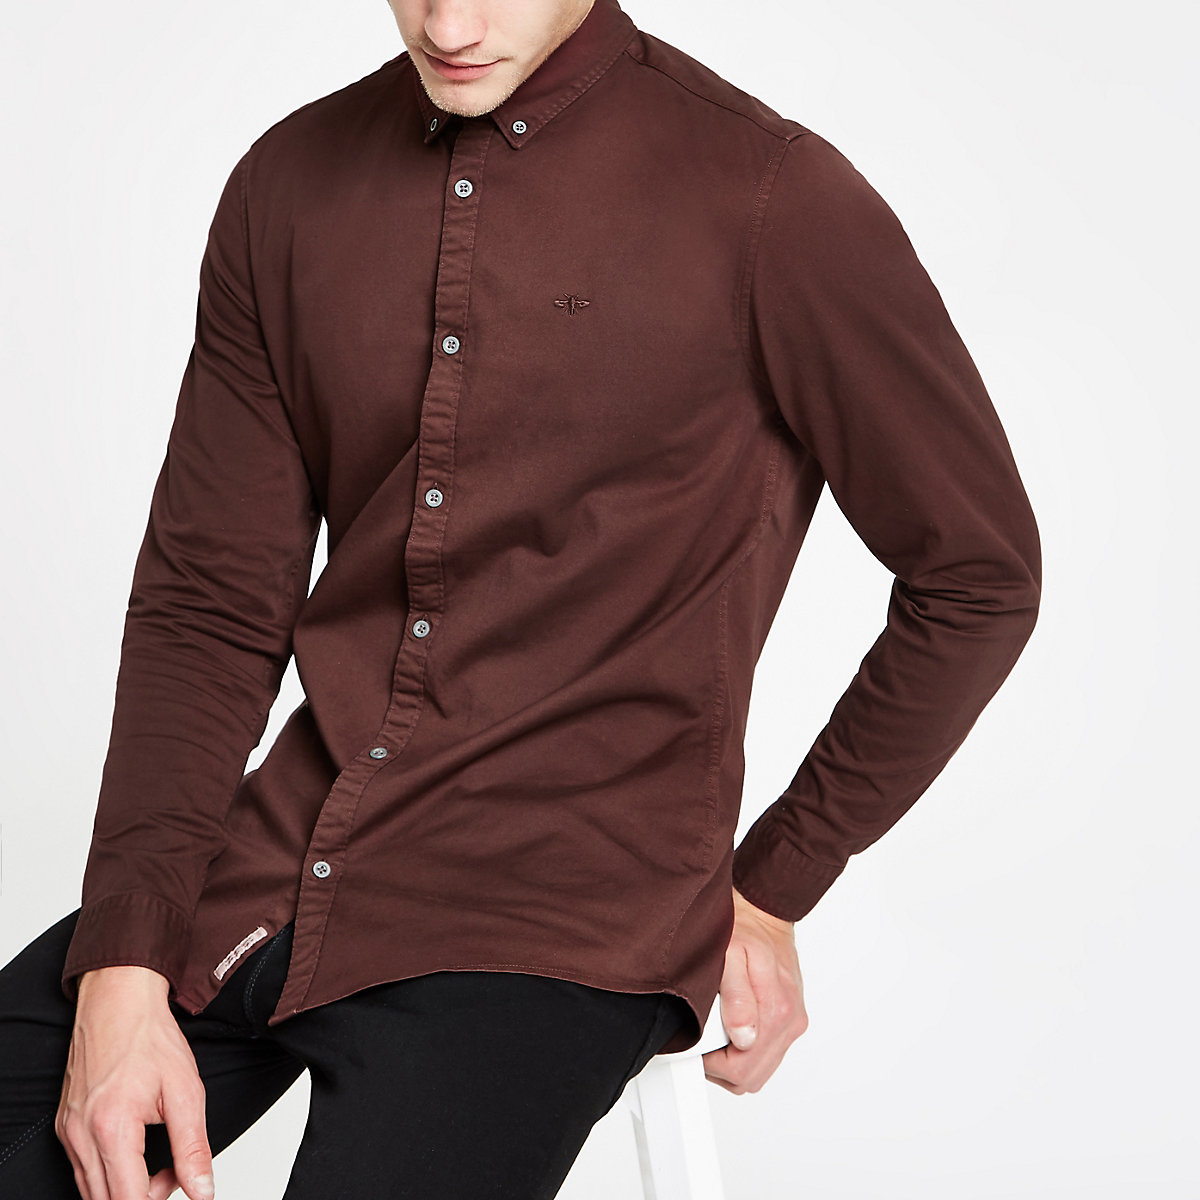 Burgundy stretch long sleeve shirt